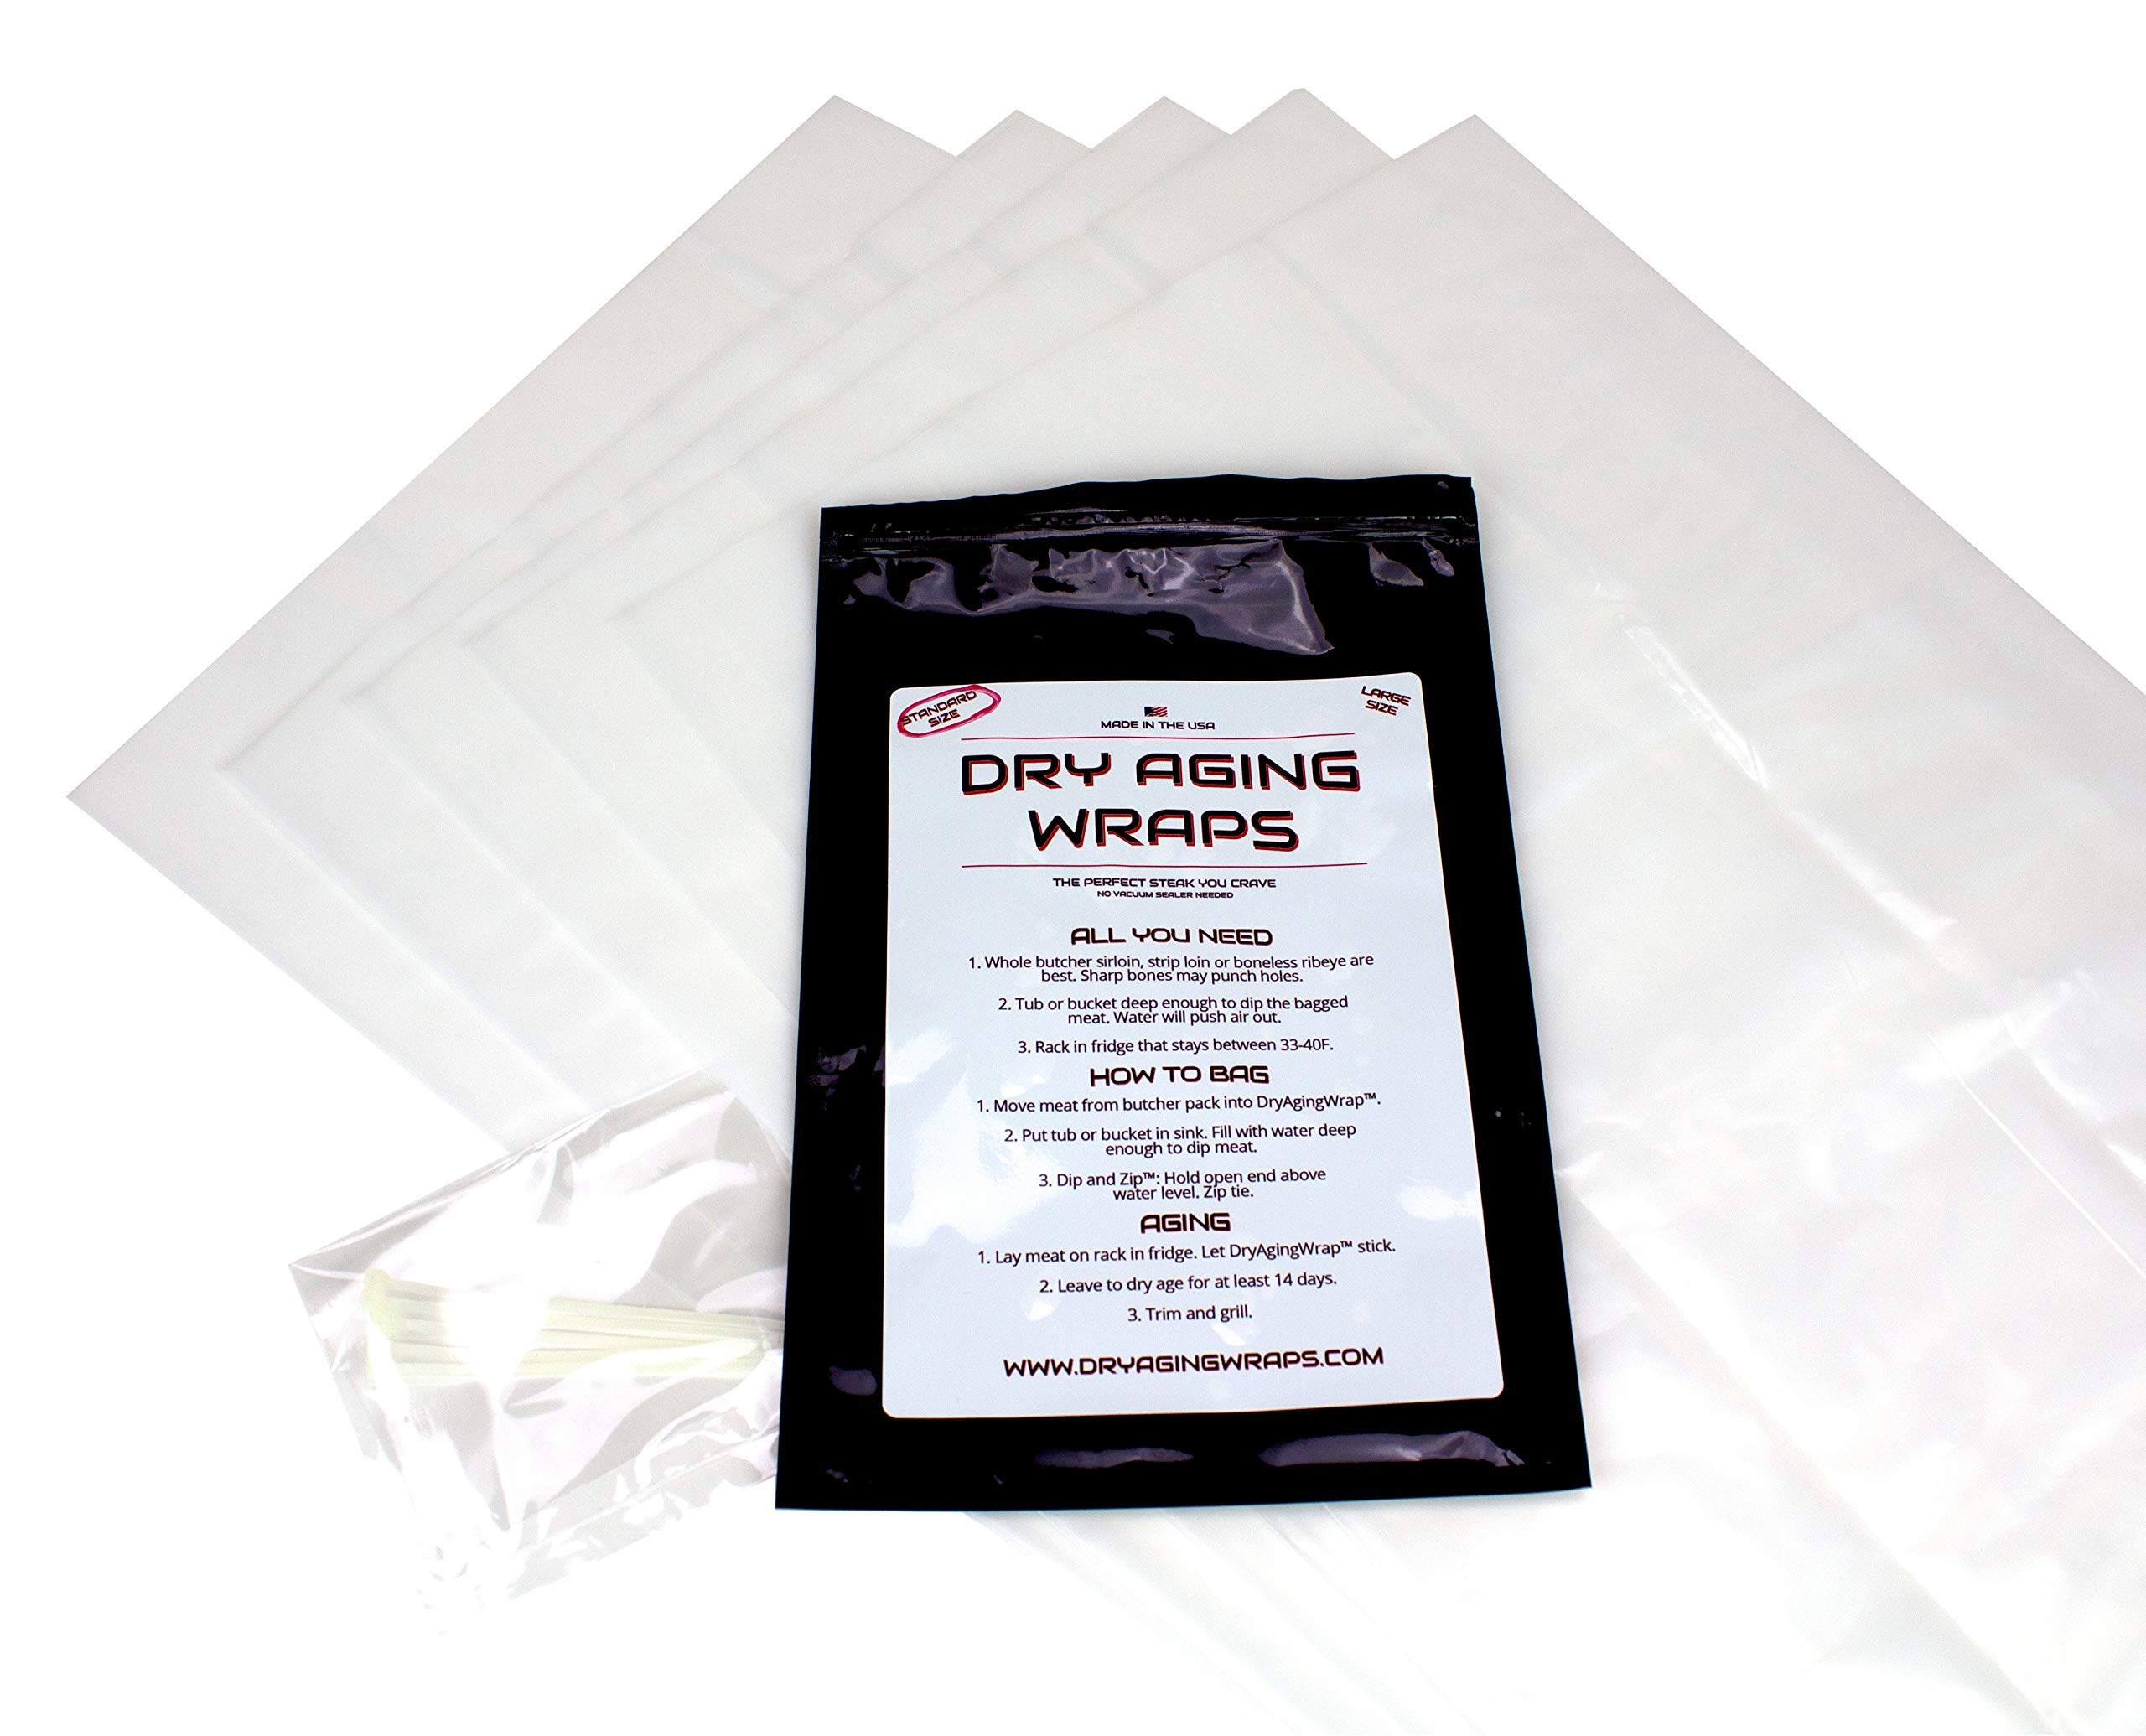 DryAgingWraps Dry Aged Bags for Meat | Sized for Ribeye and Short Loin | Perfect for Beginners | Easy at Home Dry Aging | No Vacuum Sealer Needed | 5 Bags with Zip Ties Included